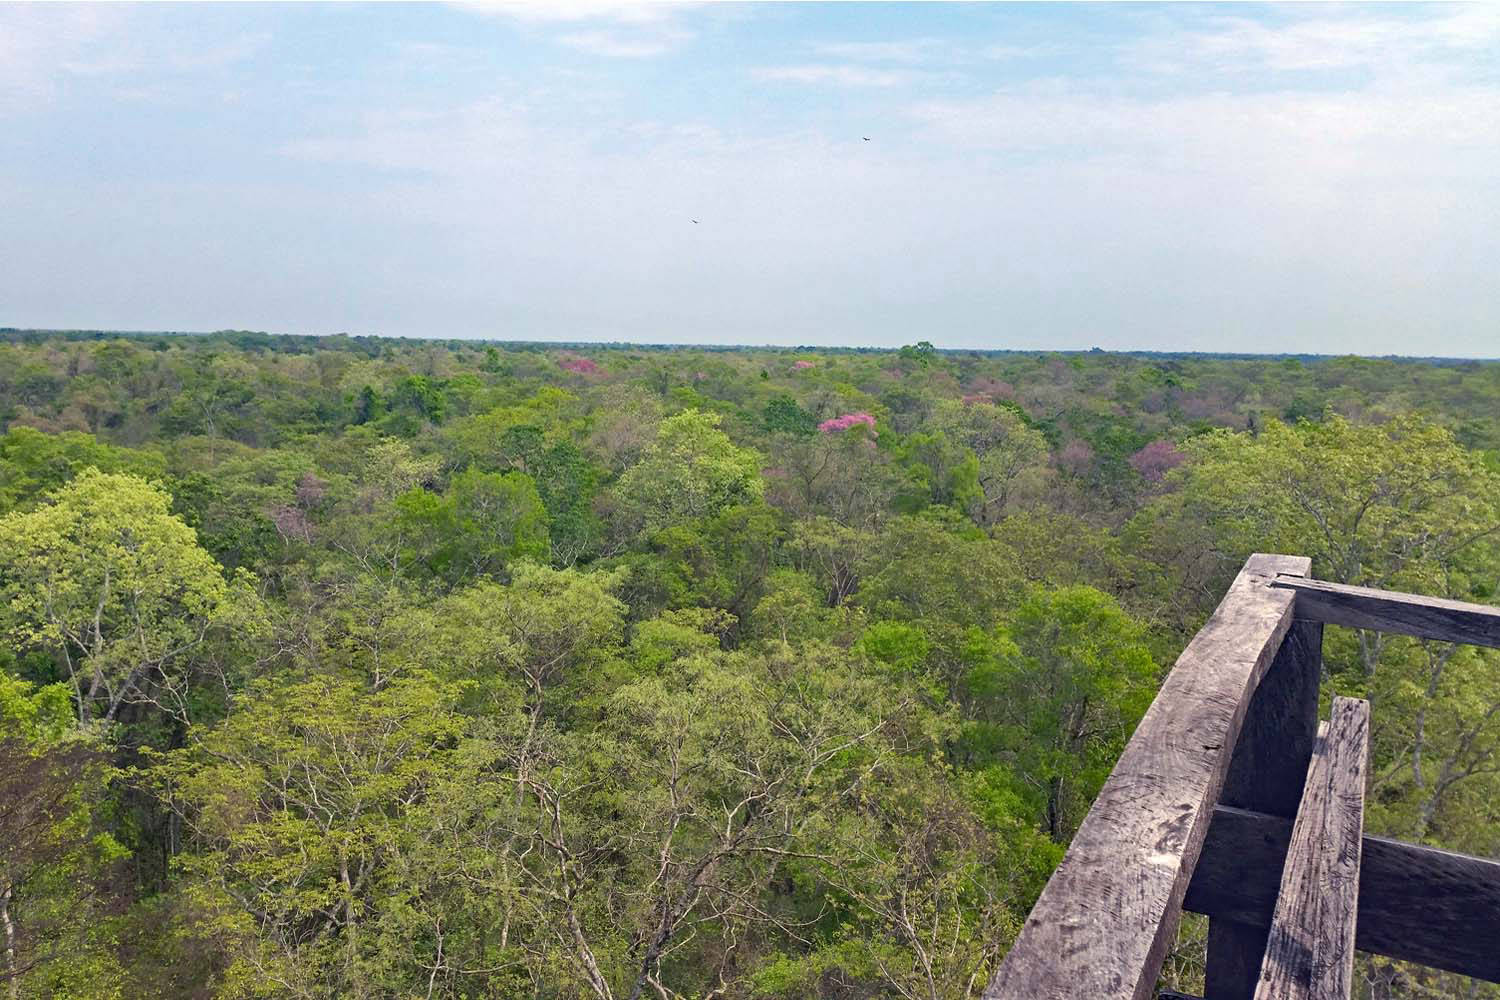 View from the tower over the surrounding countryside in the Pantanal